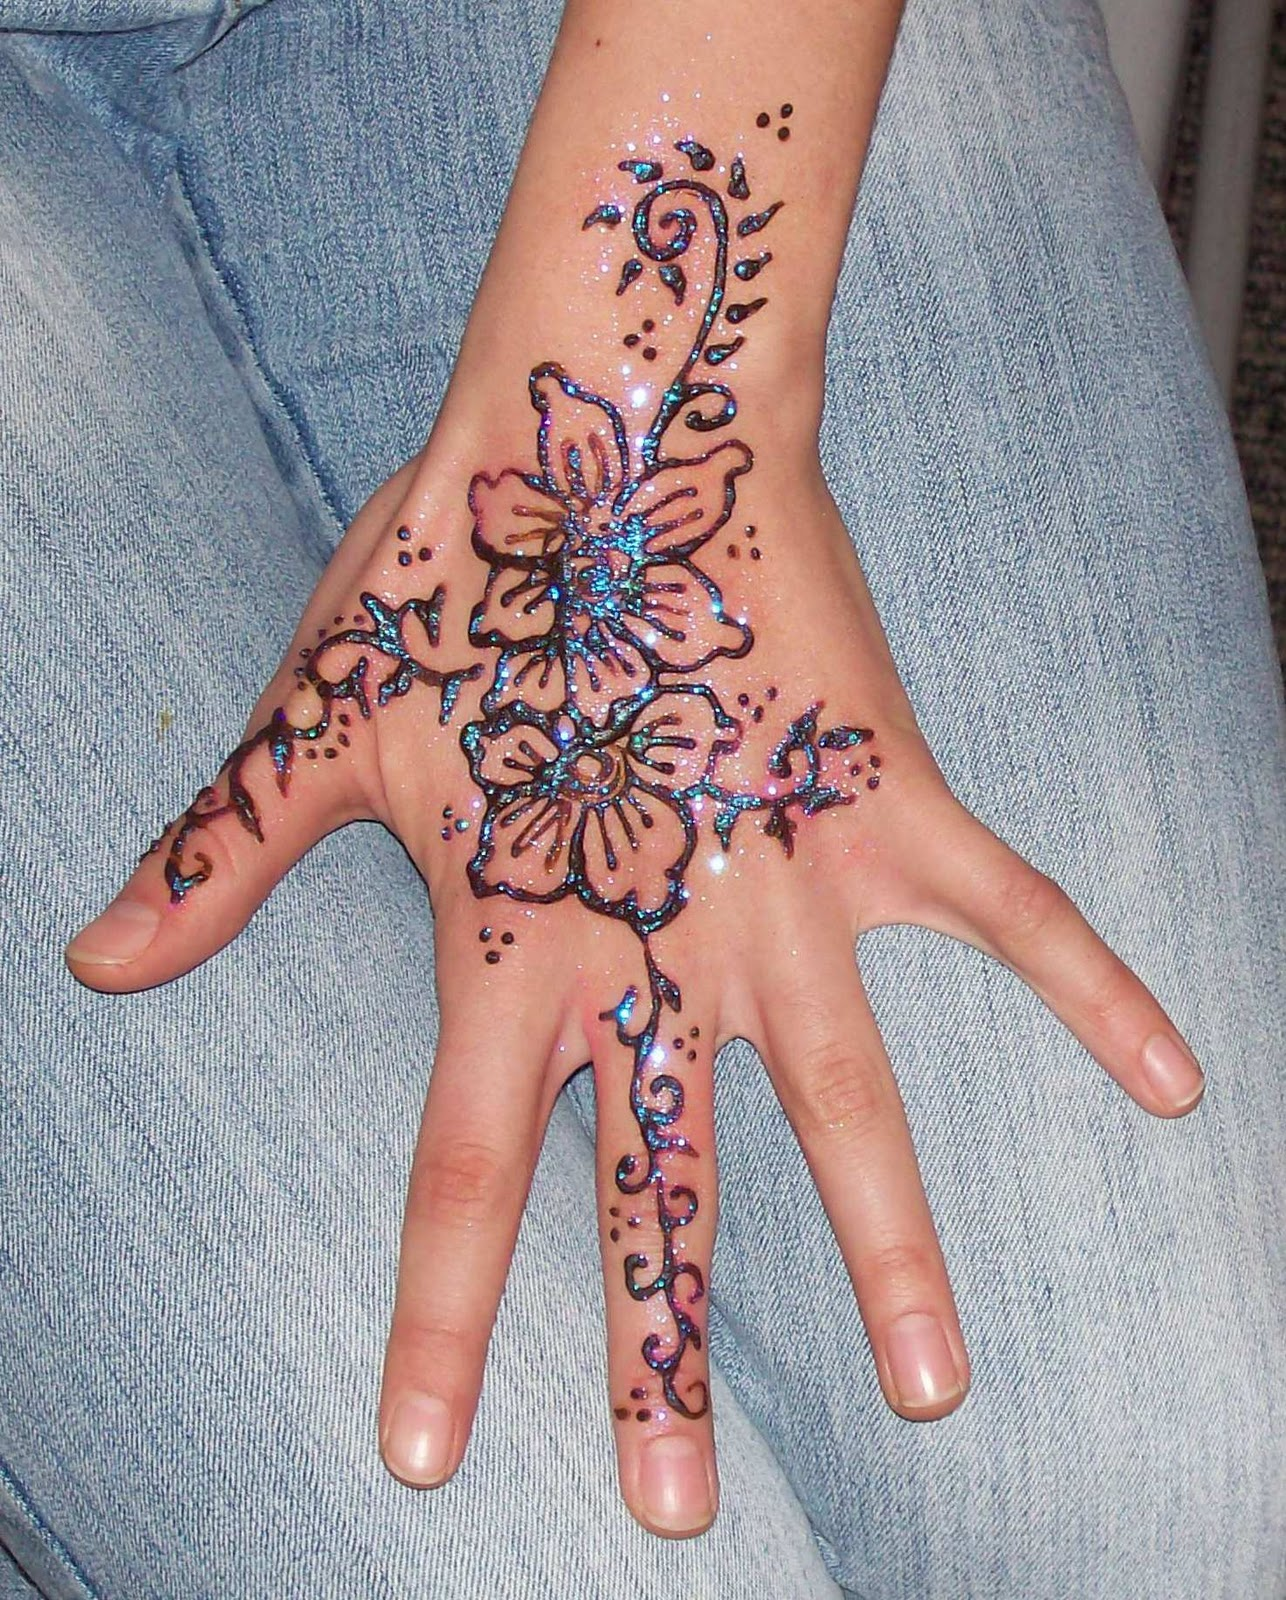 Tattoo Designs For Girls On Hand: Flower Henna Designs